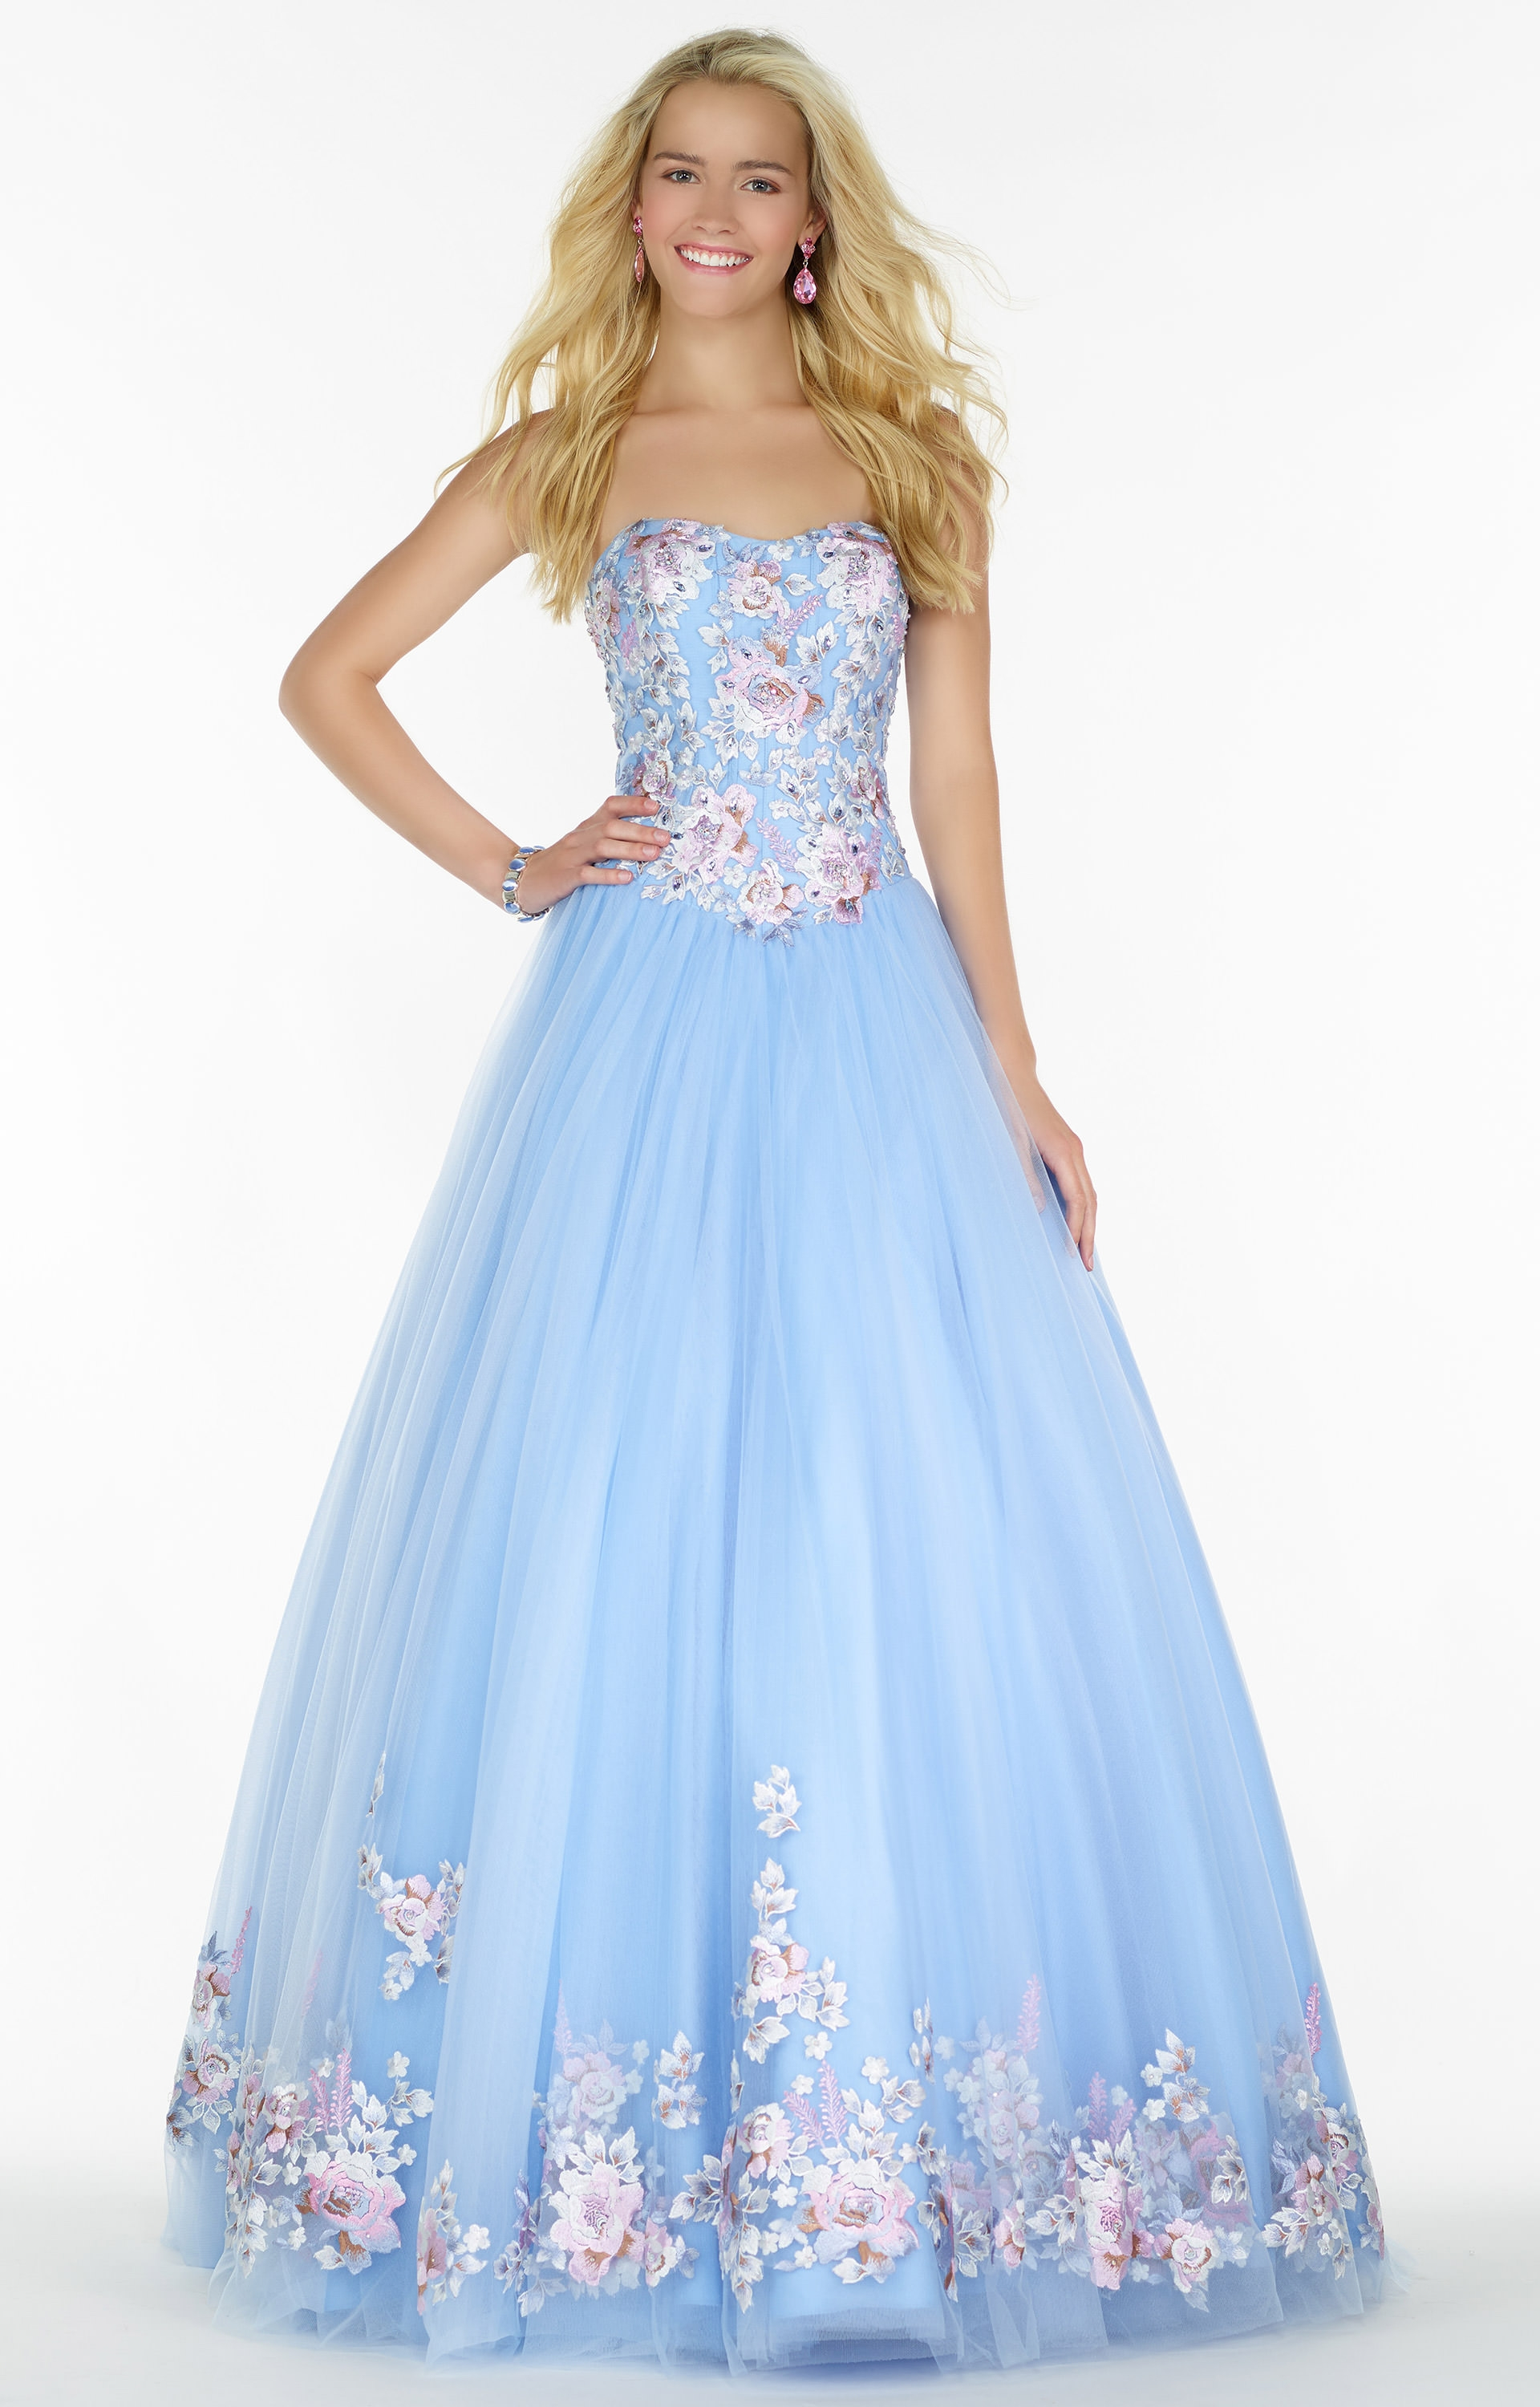 Alyce Paris 6797 Embroidered Tulle Ball Gown Prom Dress